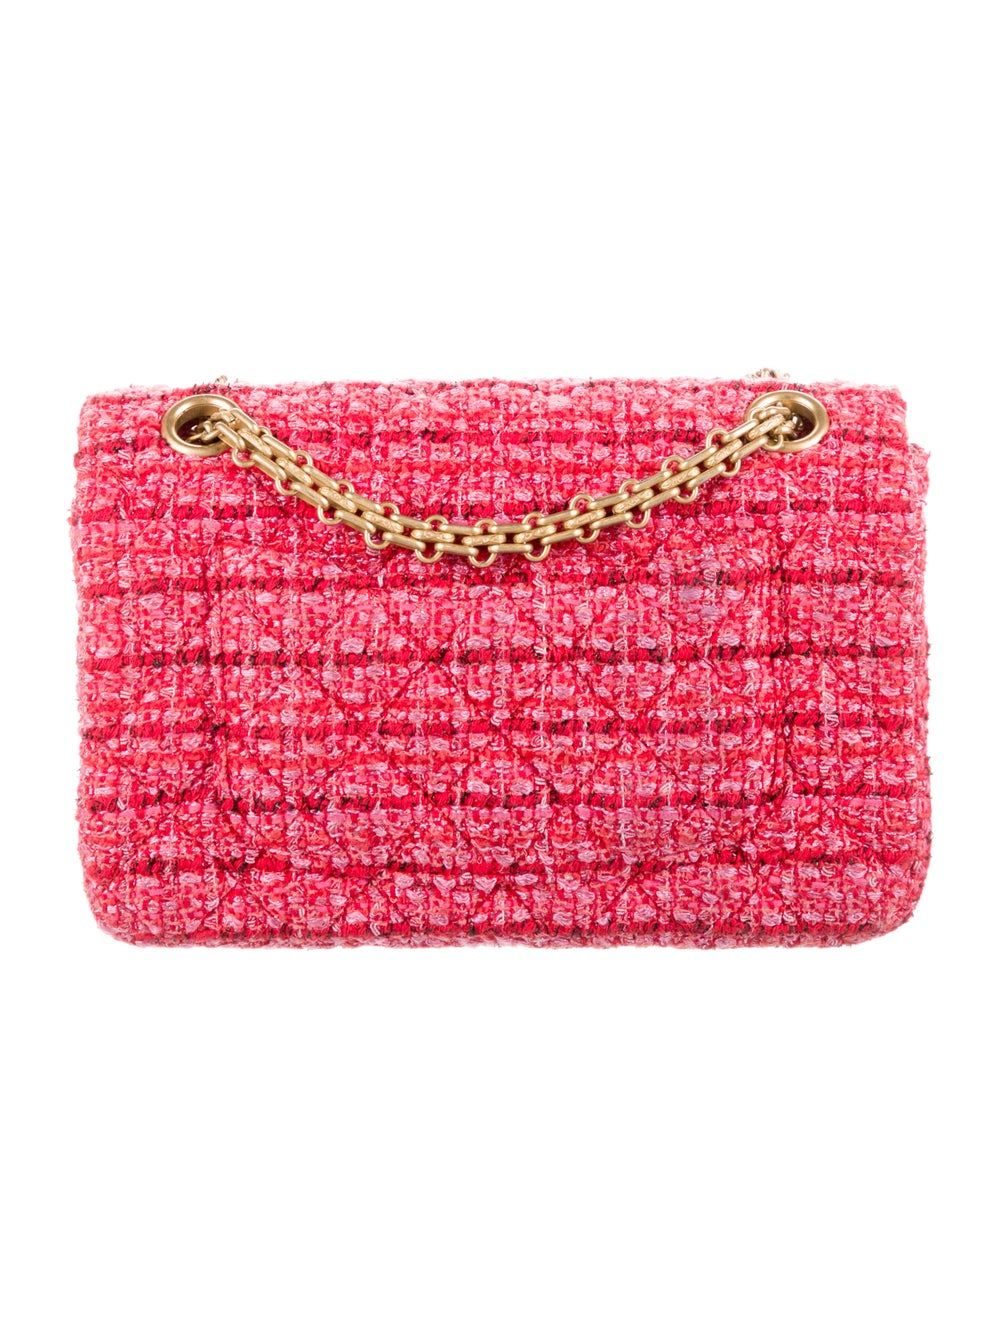 Chanel Tweed Reissue Mini Flap Bag Red - image 4